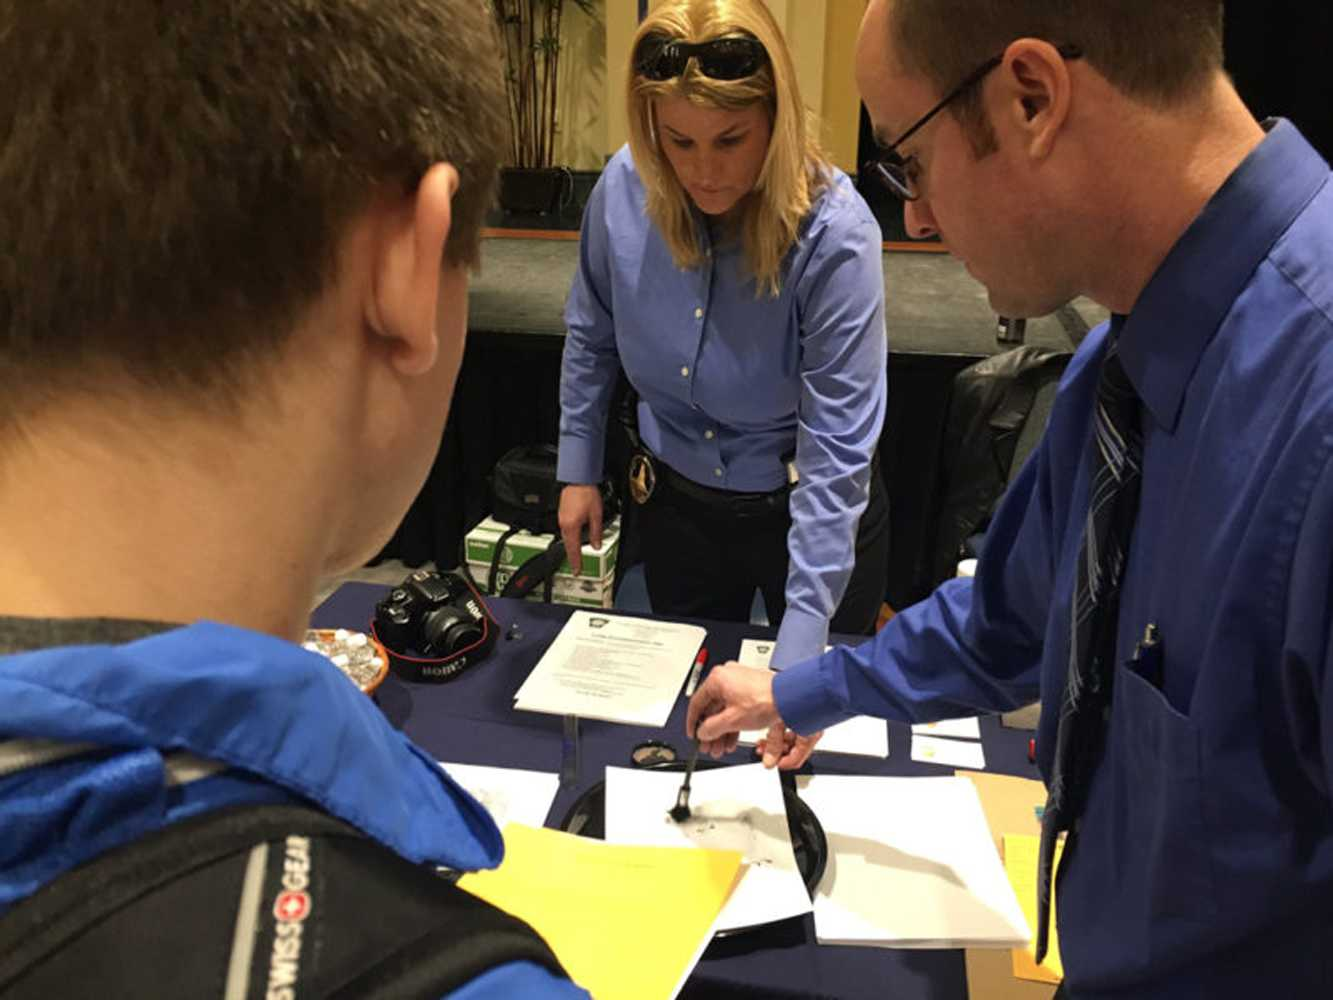 Students watch a fingerprinting demonstration at the Spring Safety Fair in February. (Photo courtesy of DaVaughn Vincent-Bryan)